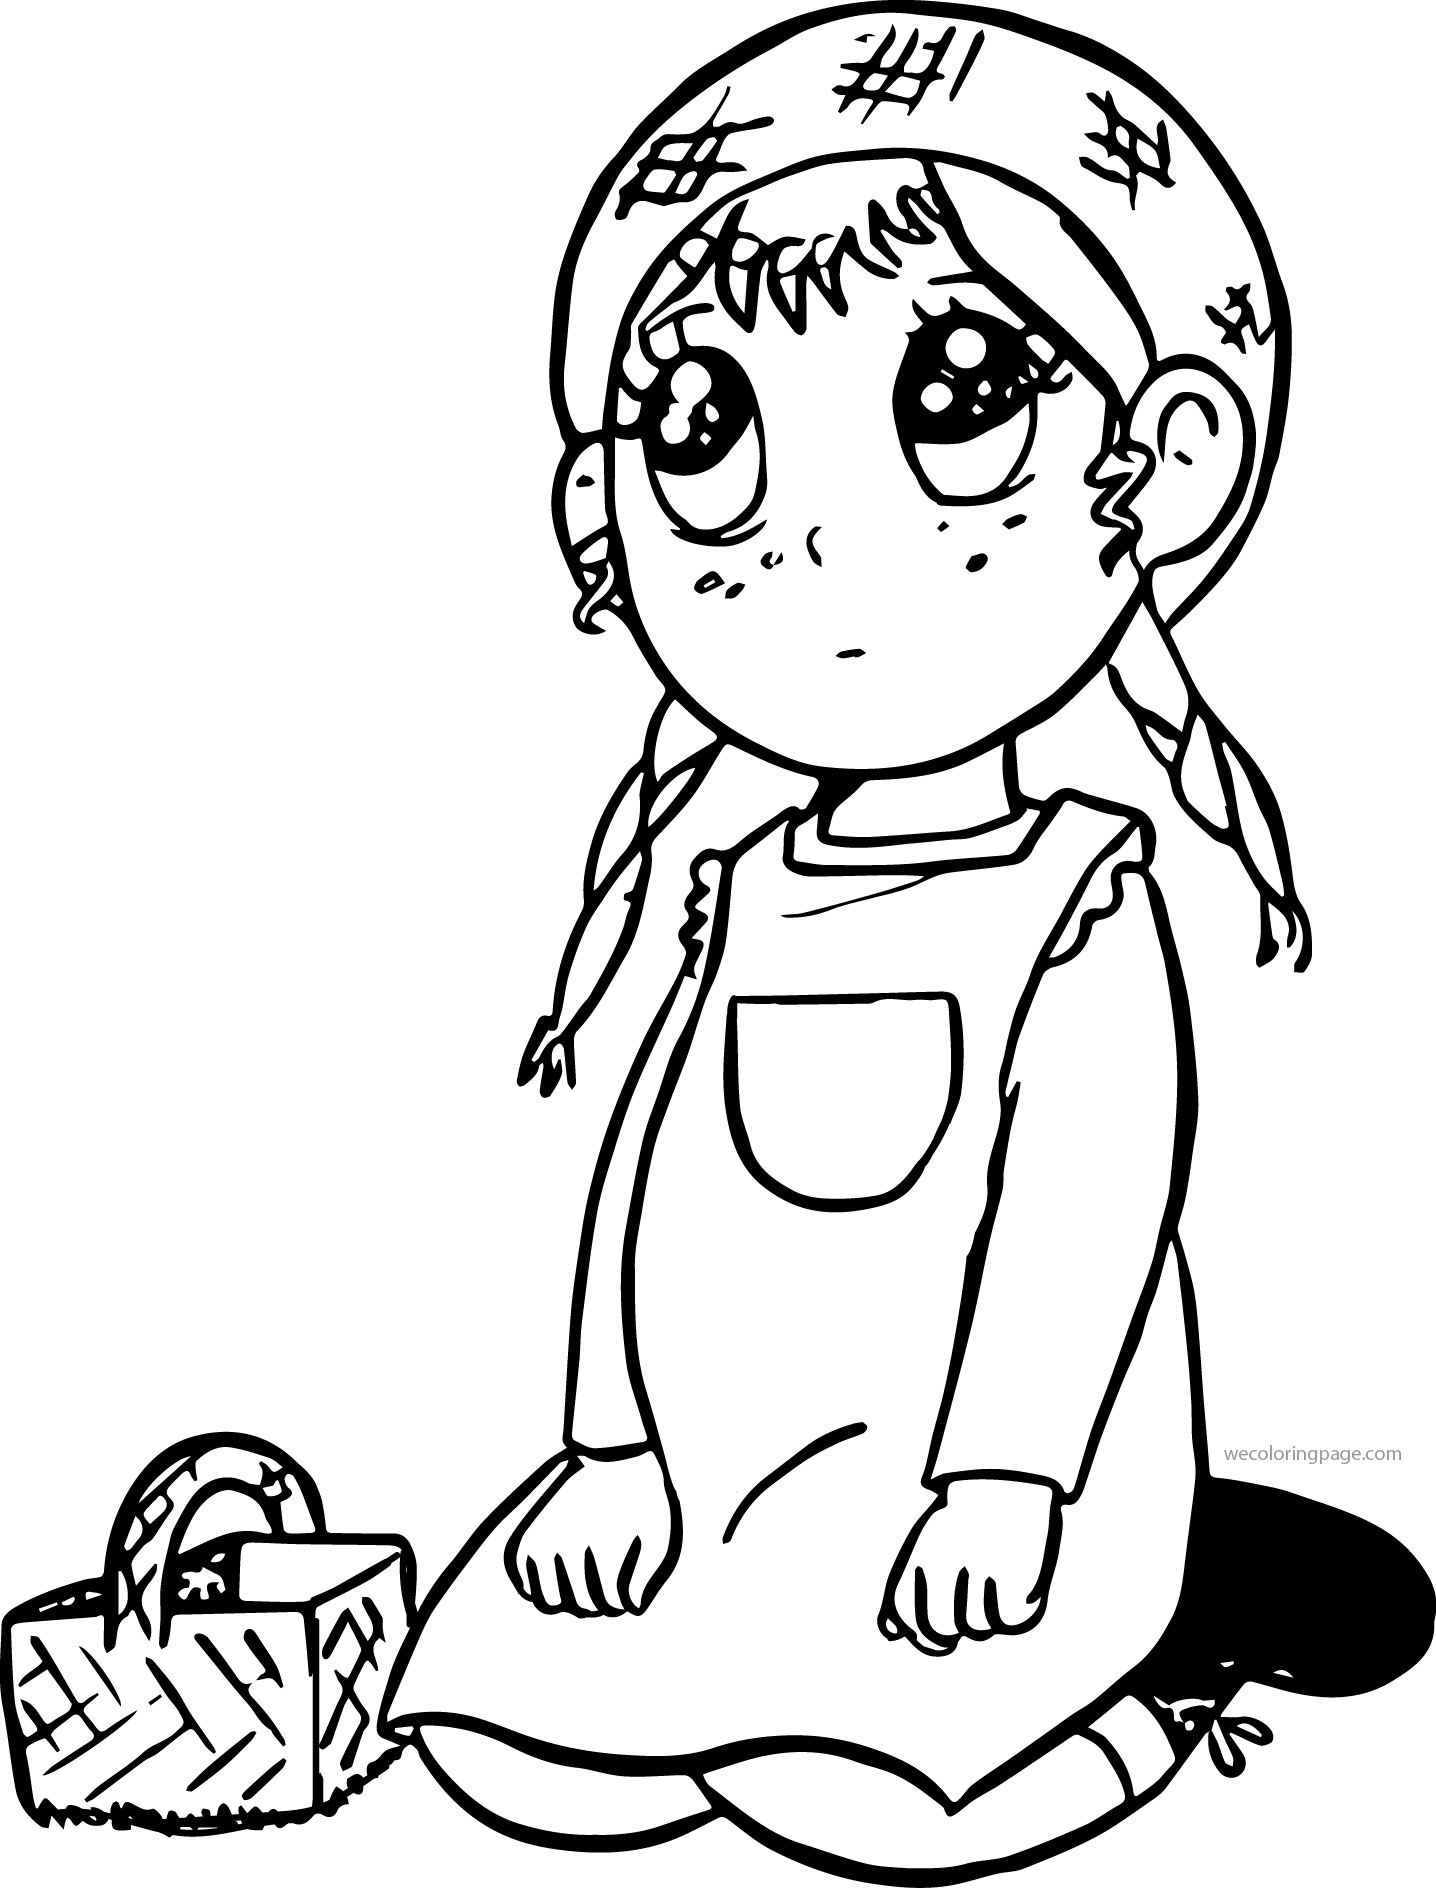 Uncategorized Anne Of Green Gables Coloring Pages anne of green gables coloring pages wecoloringpage pinterest pages